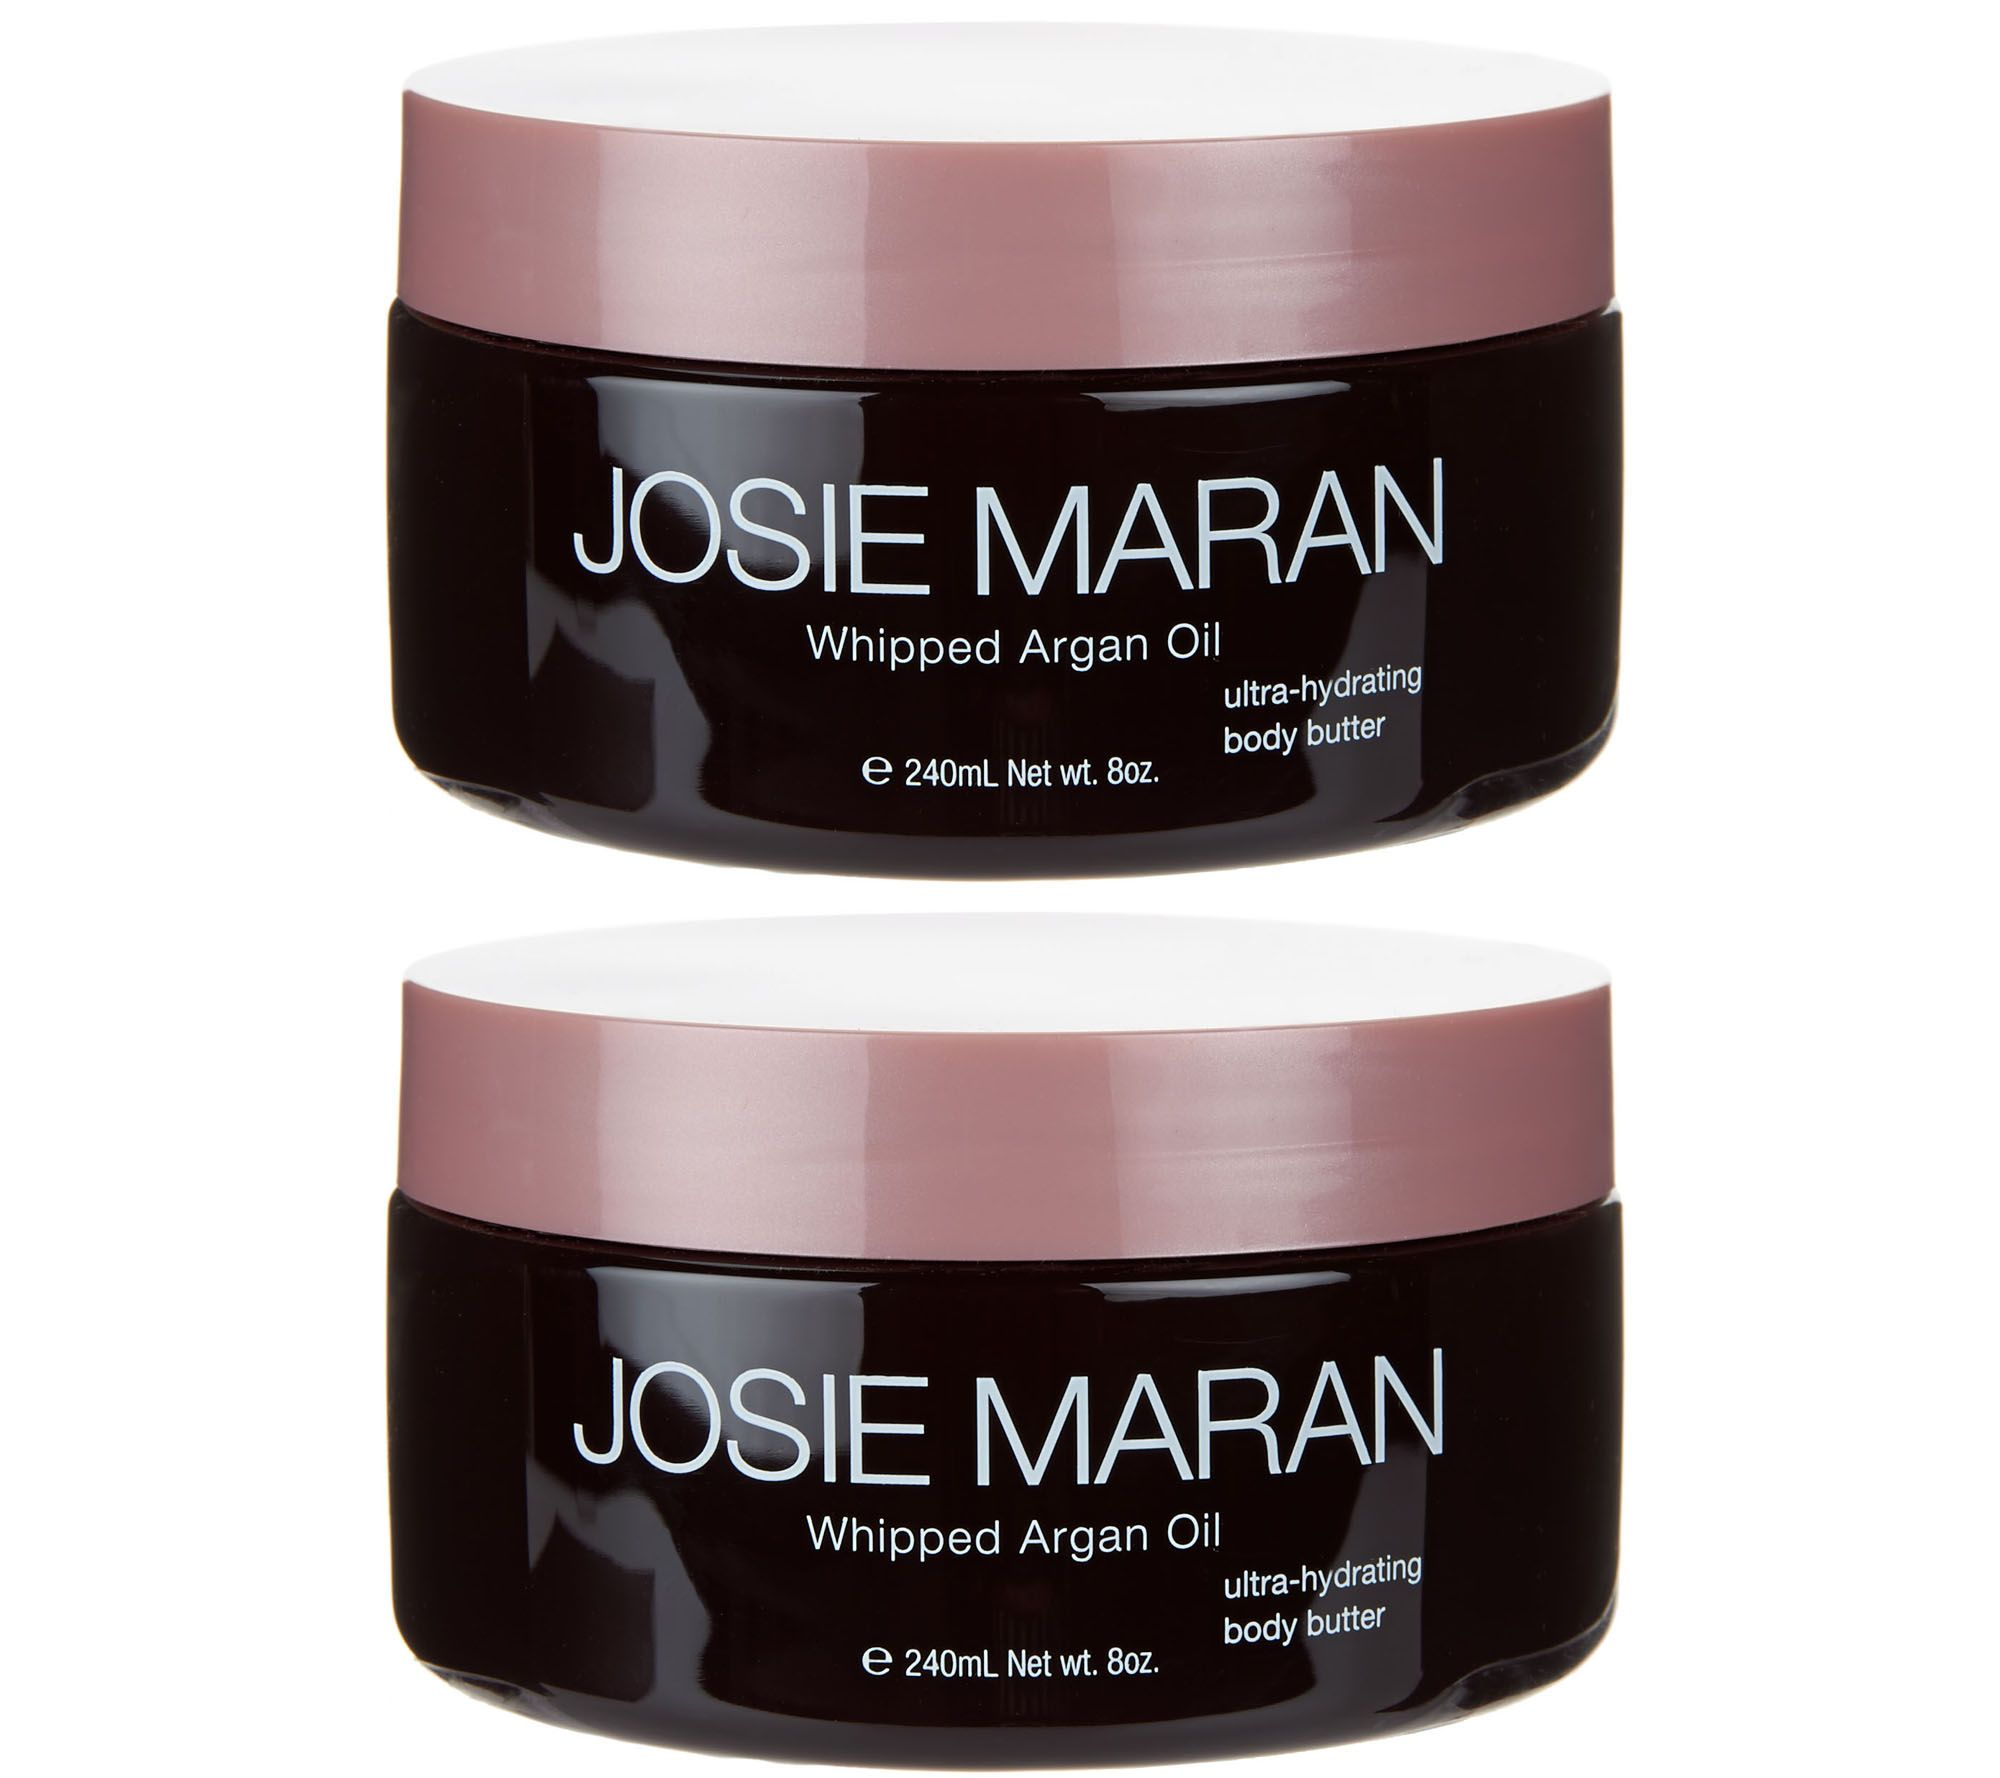 josie maran dreaming of an argan christmas whipped body butter duo page 1. Black Bedroom Furniture Sets. Home Design Ideas